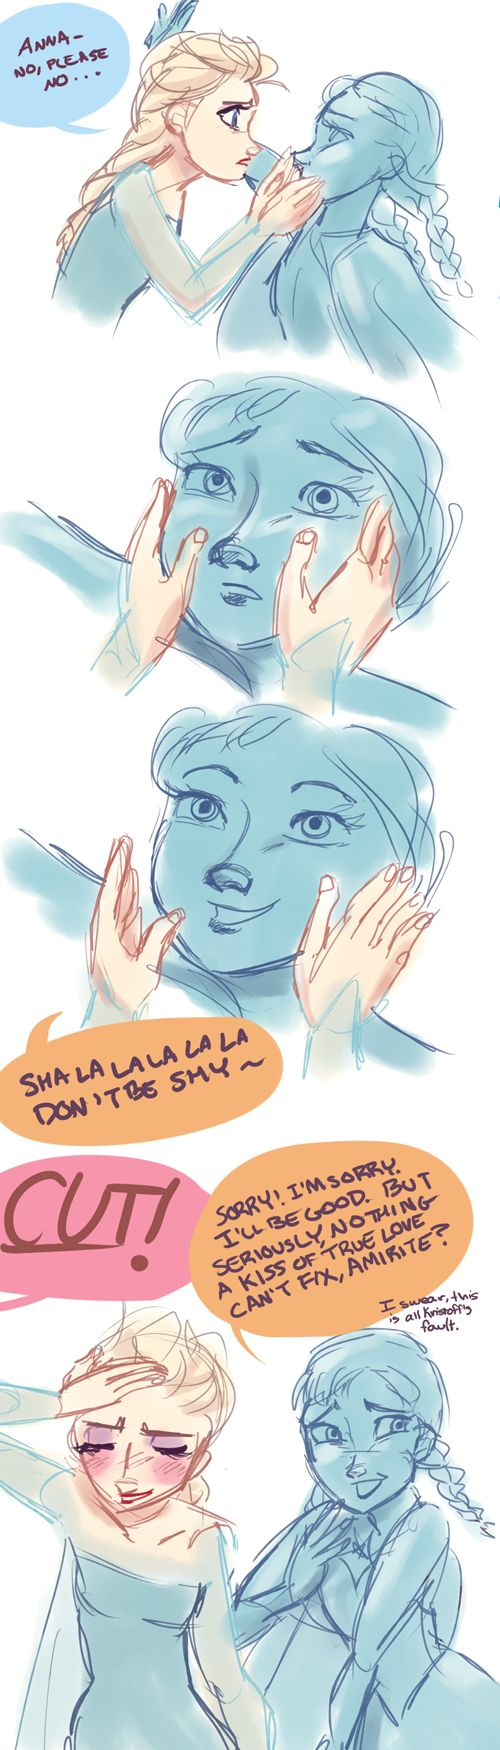 Hilarious Frozen Actor!AU- Ruining the Moment by maybelletea.deviantart.com on @deviantART